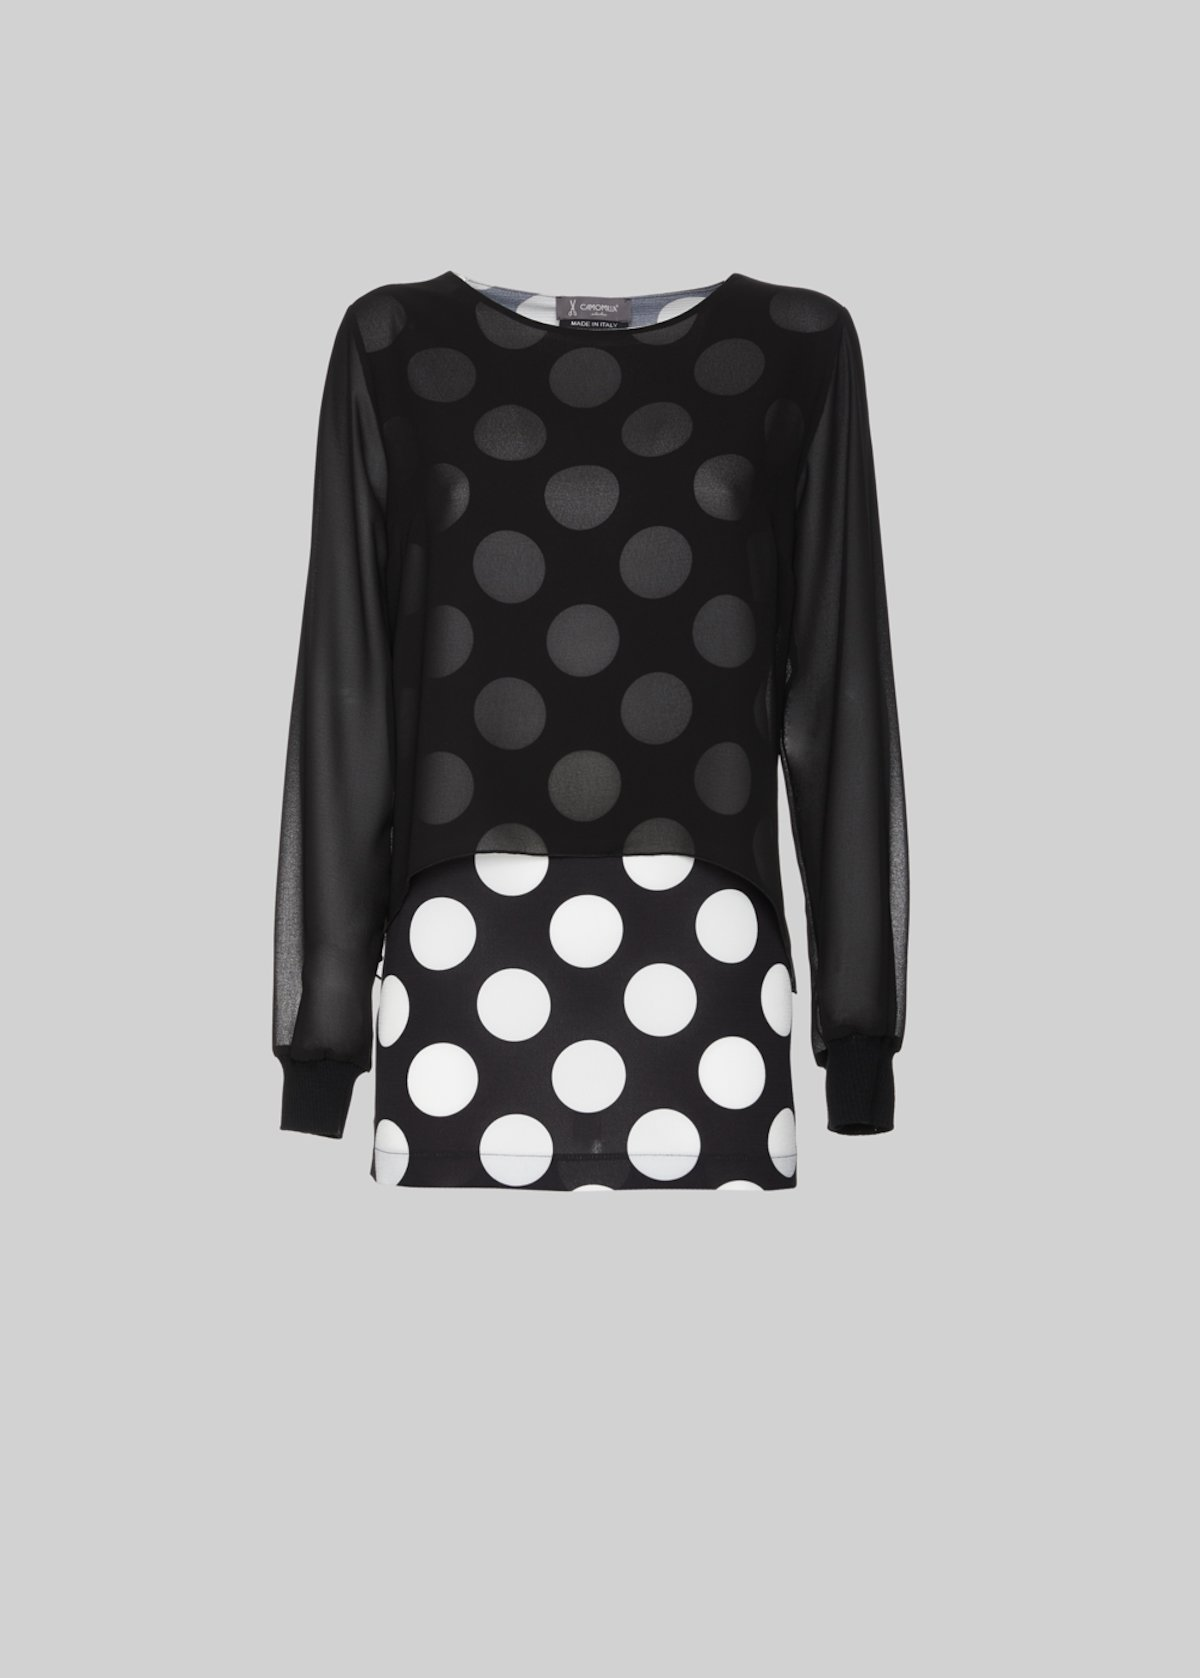 T-shirt Sissi in crepe, pannello sovrastante e maniche in georgette - Black / White Pois